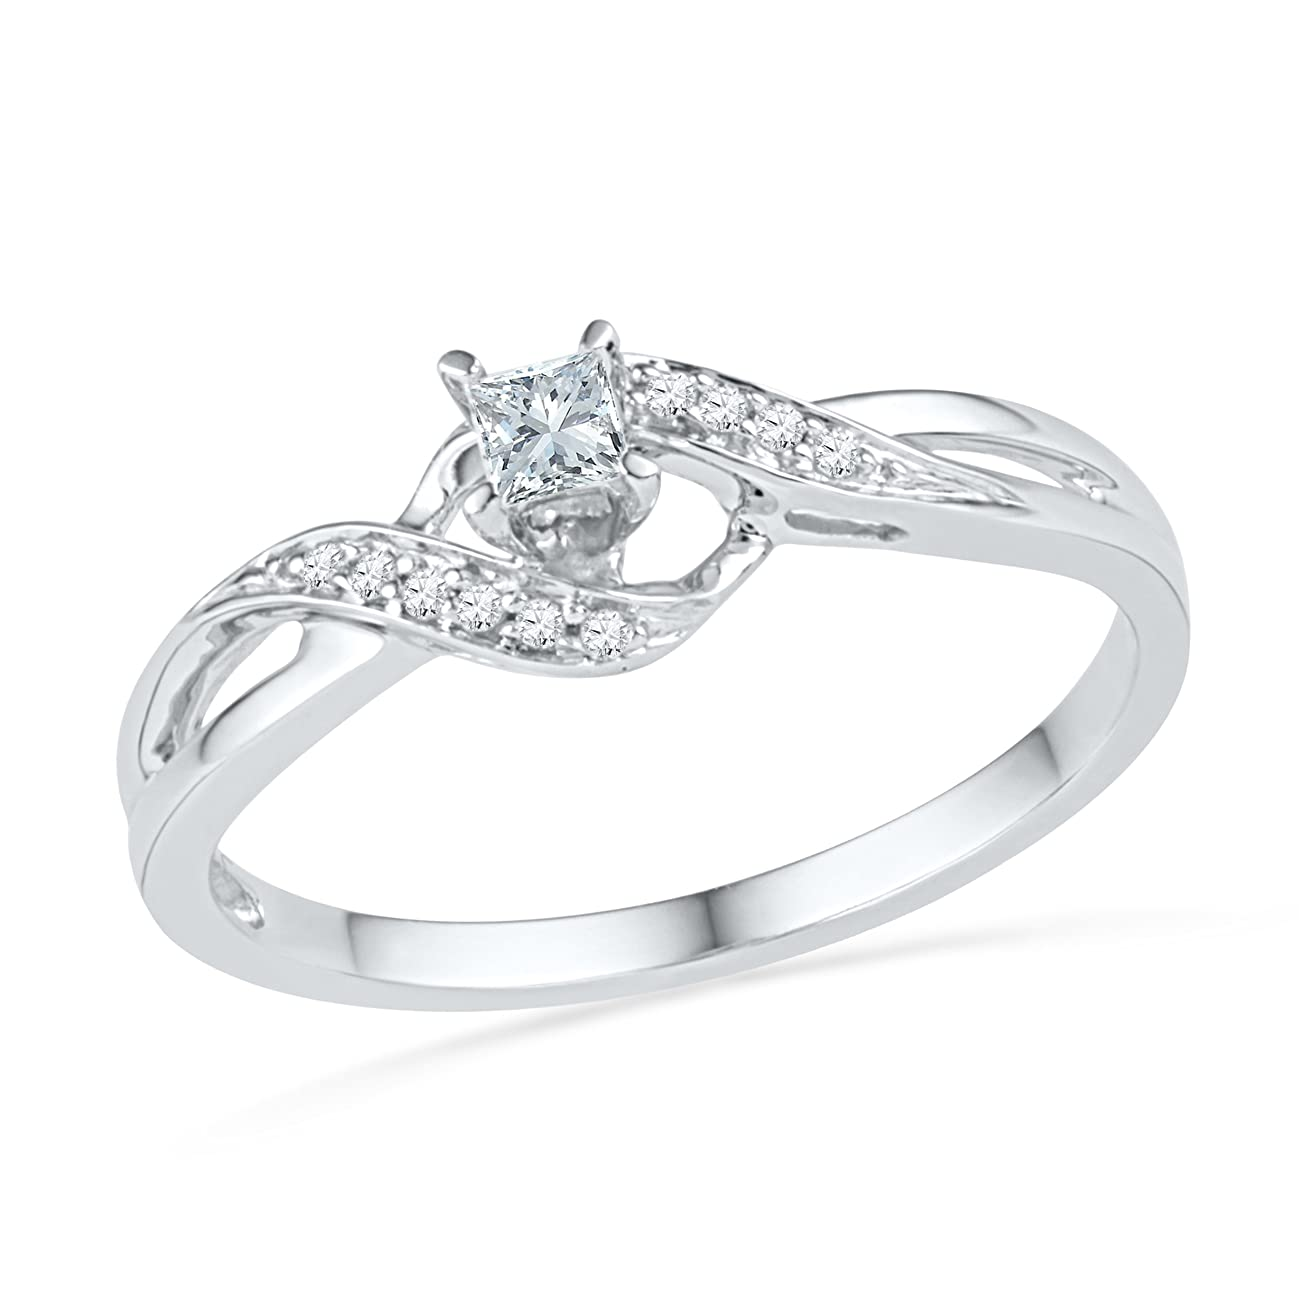 D-GOLD 10KT White Gold Princess and Round Diamond Promise Ring (0.13 CTTW)